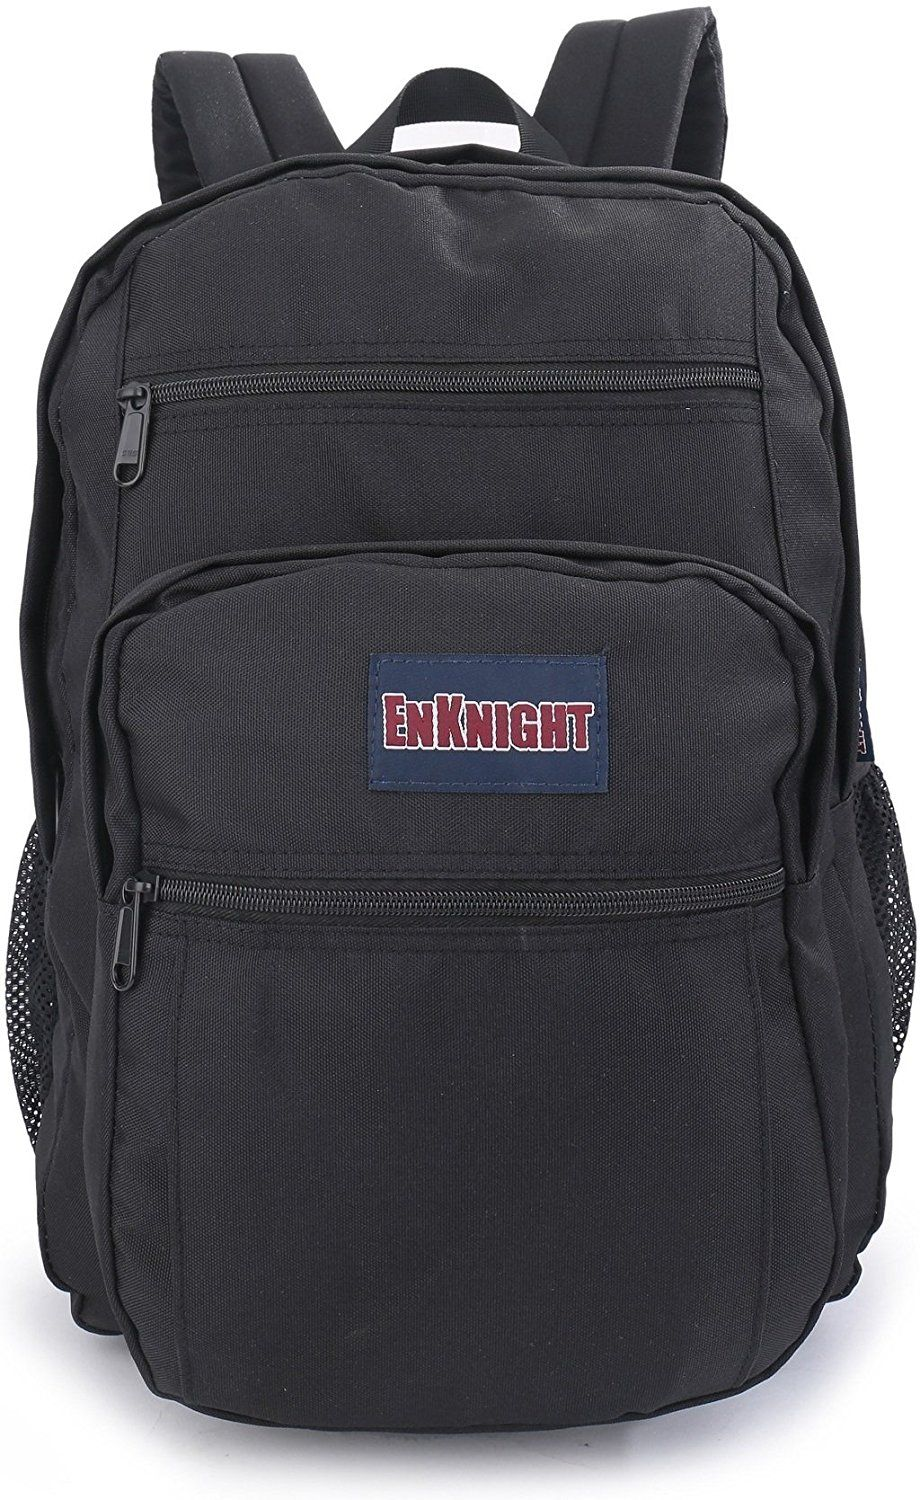 698fdfe3ab ENKNIGHT Big Waterproof College Backpack    You can find more details here    Backpack